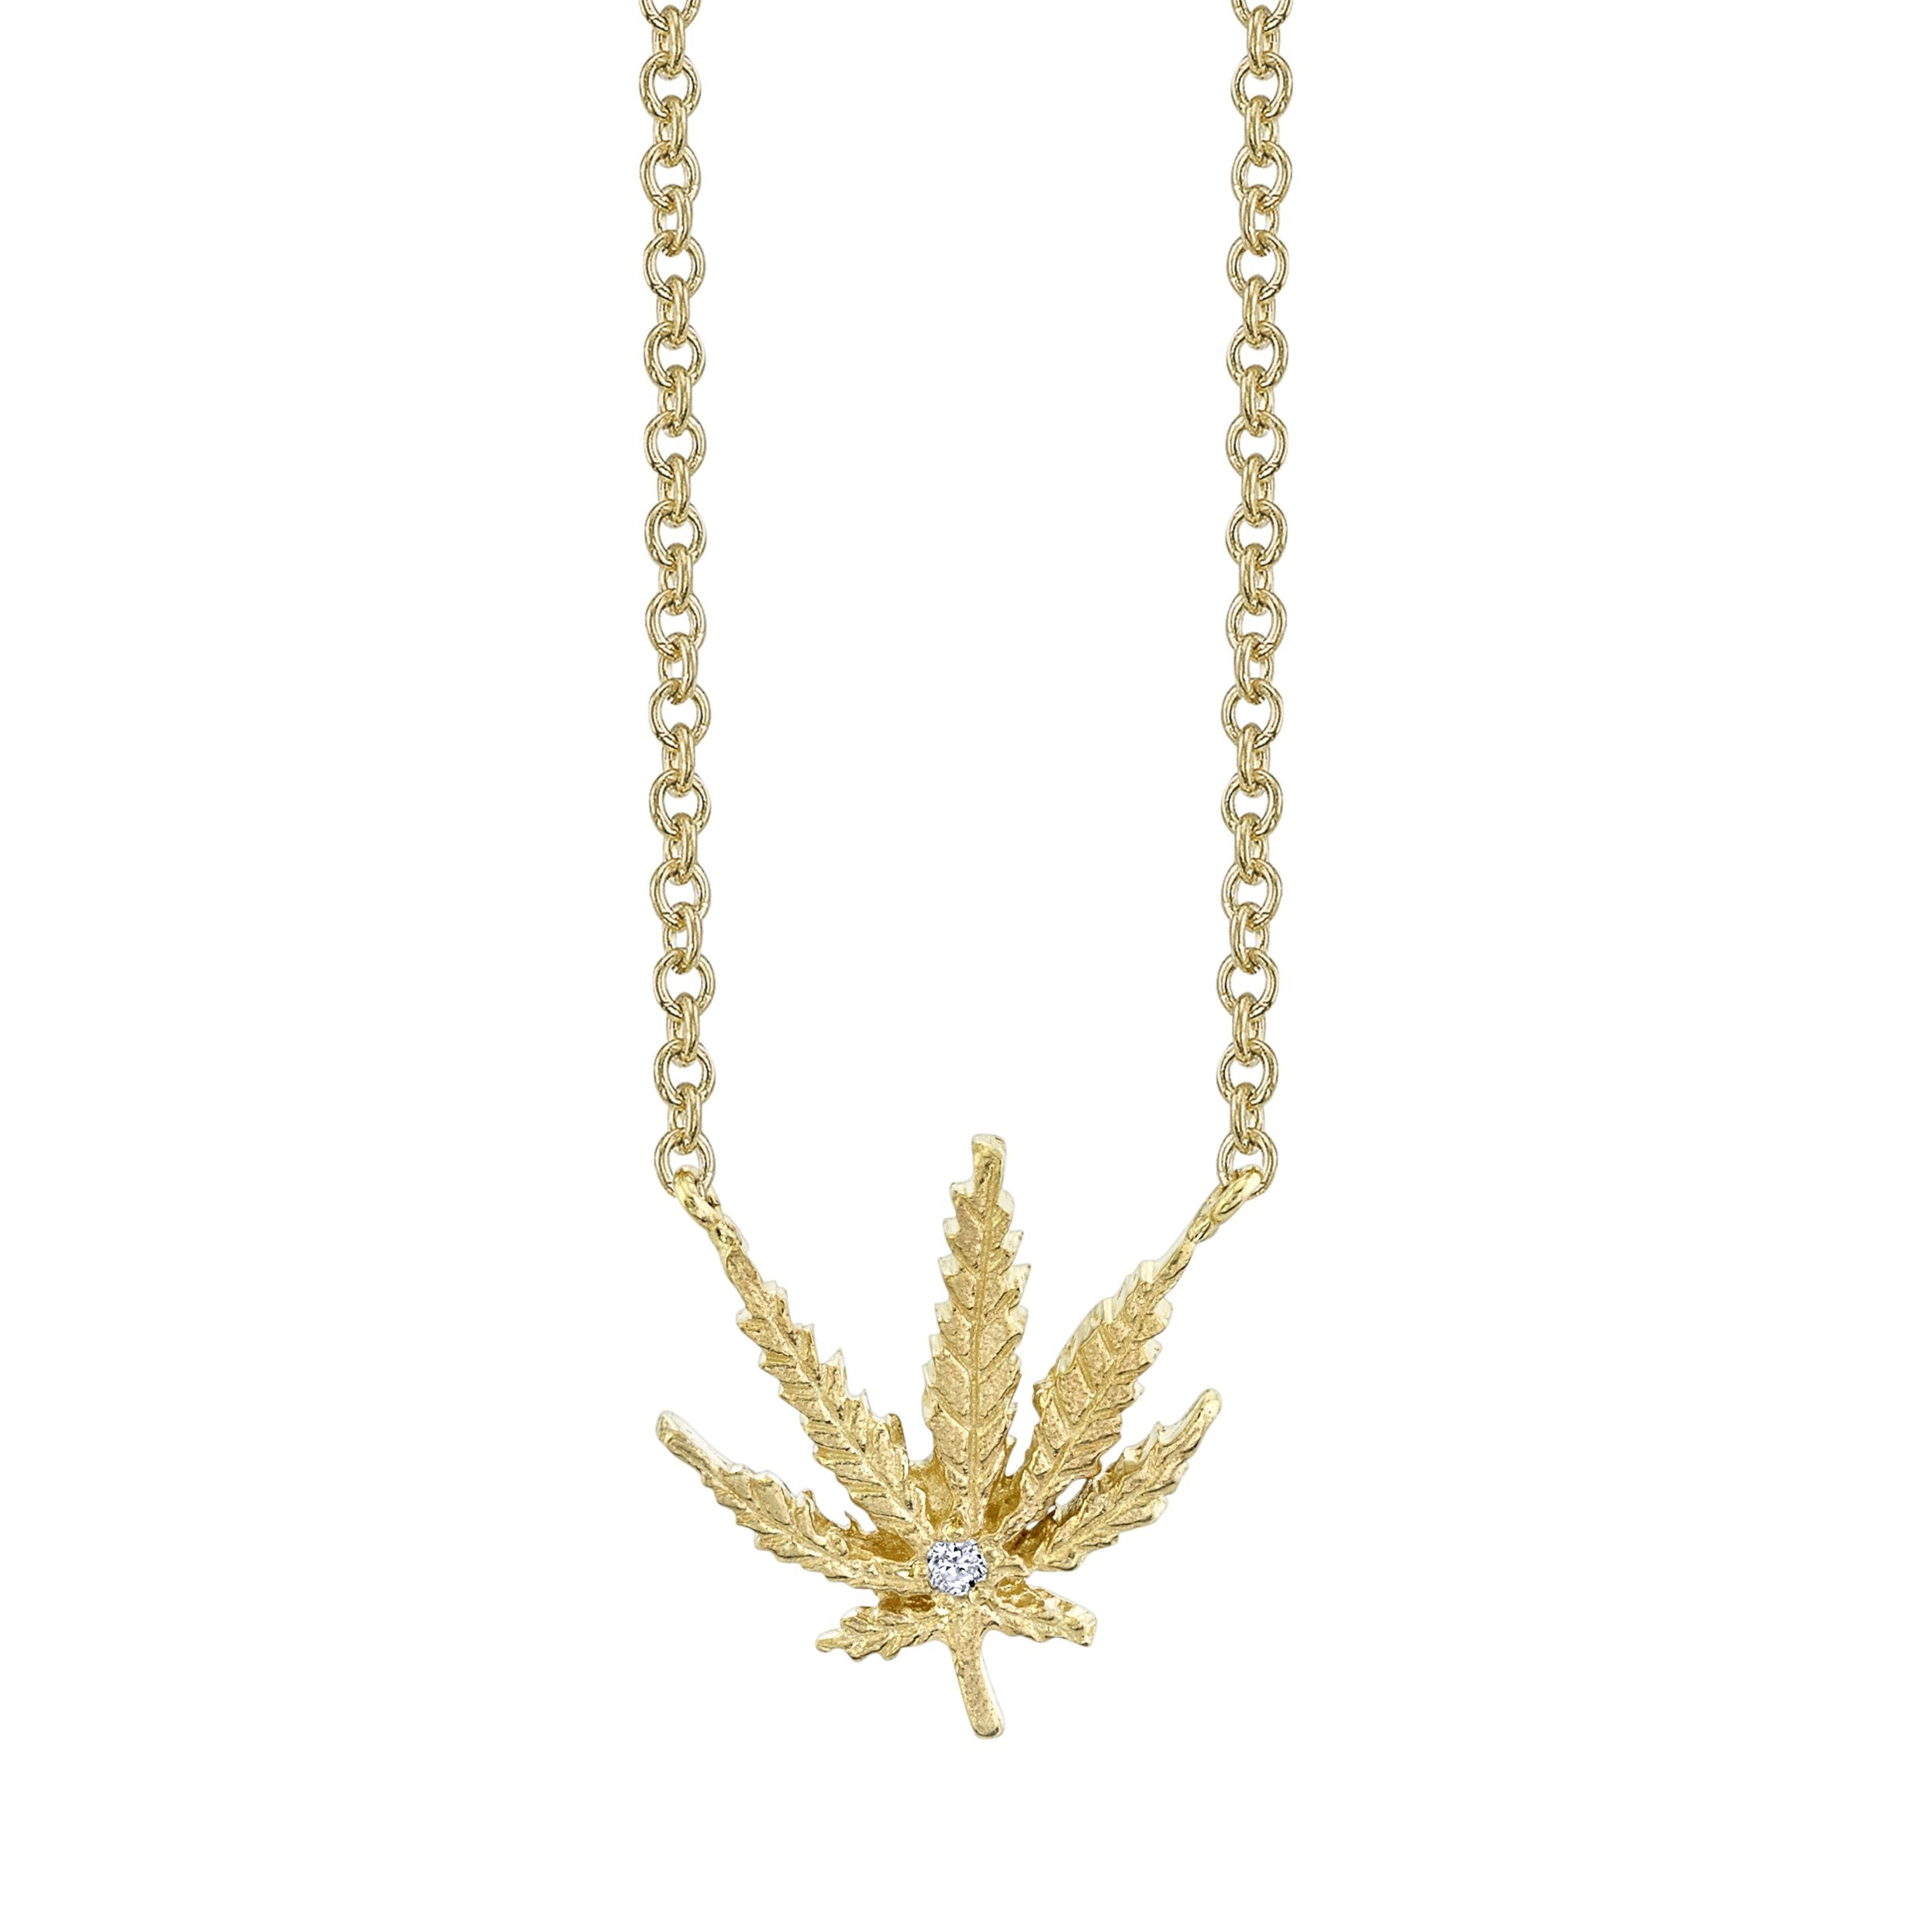 NEW! Kaya Leaf Necklace